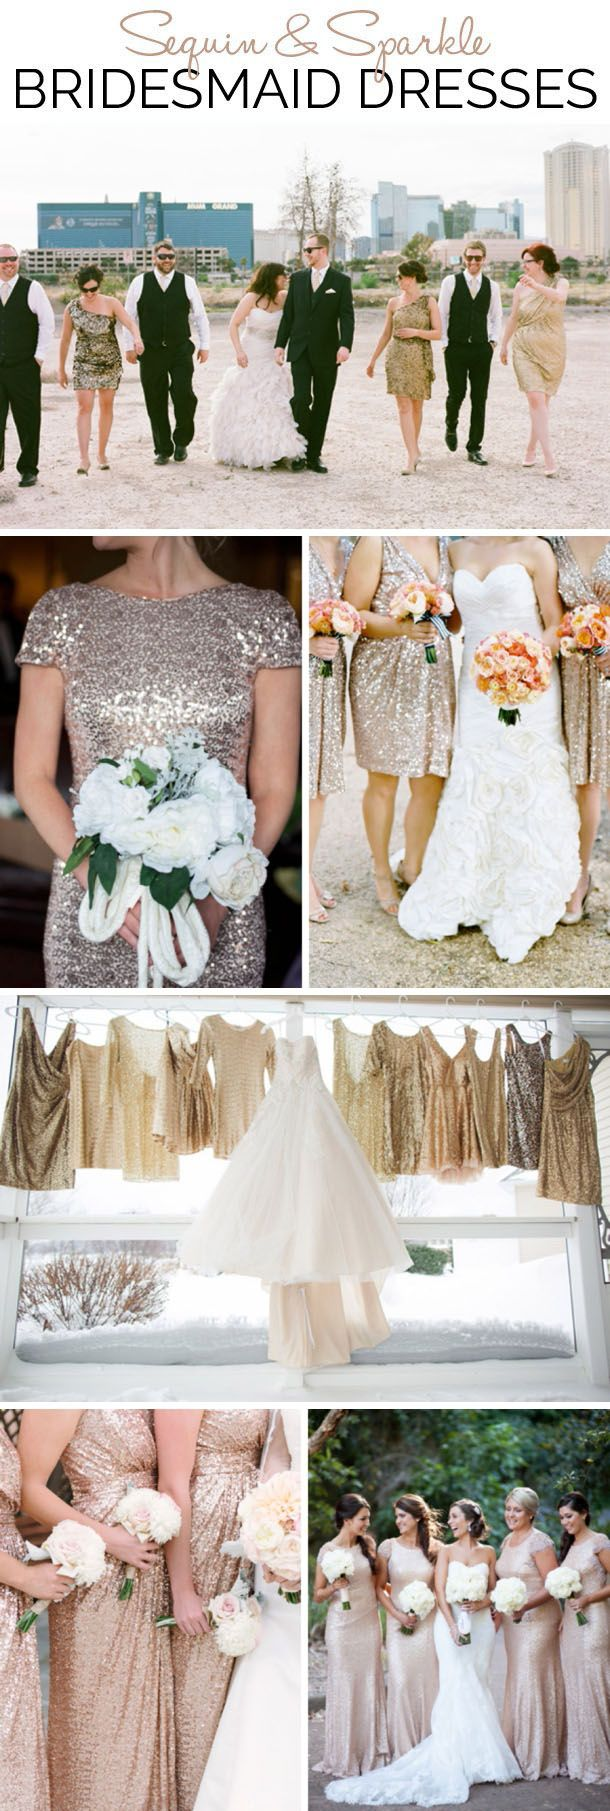 Sequin & Sparkle Bridesmaid Dresses | SouthBound Bride